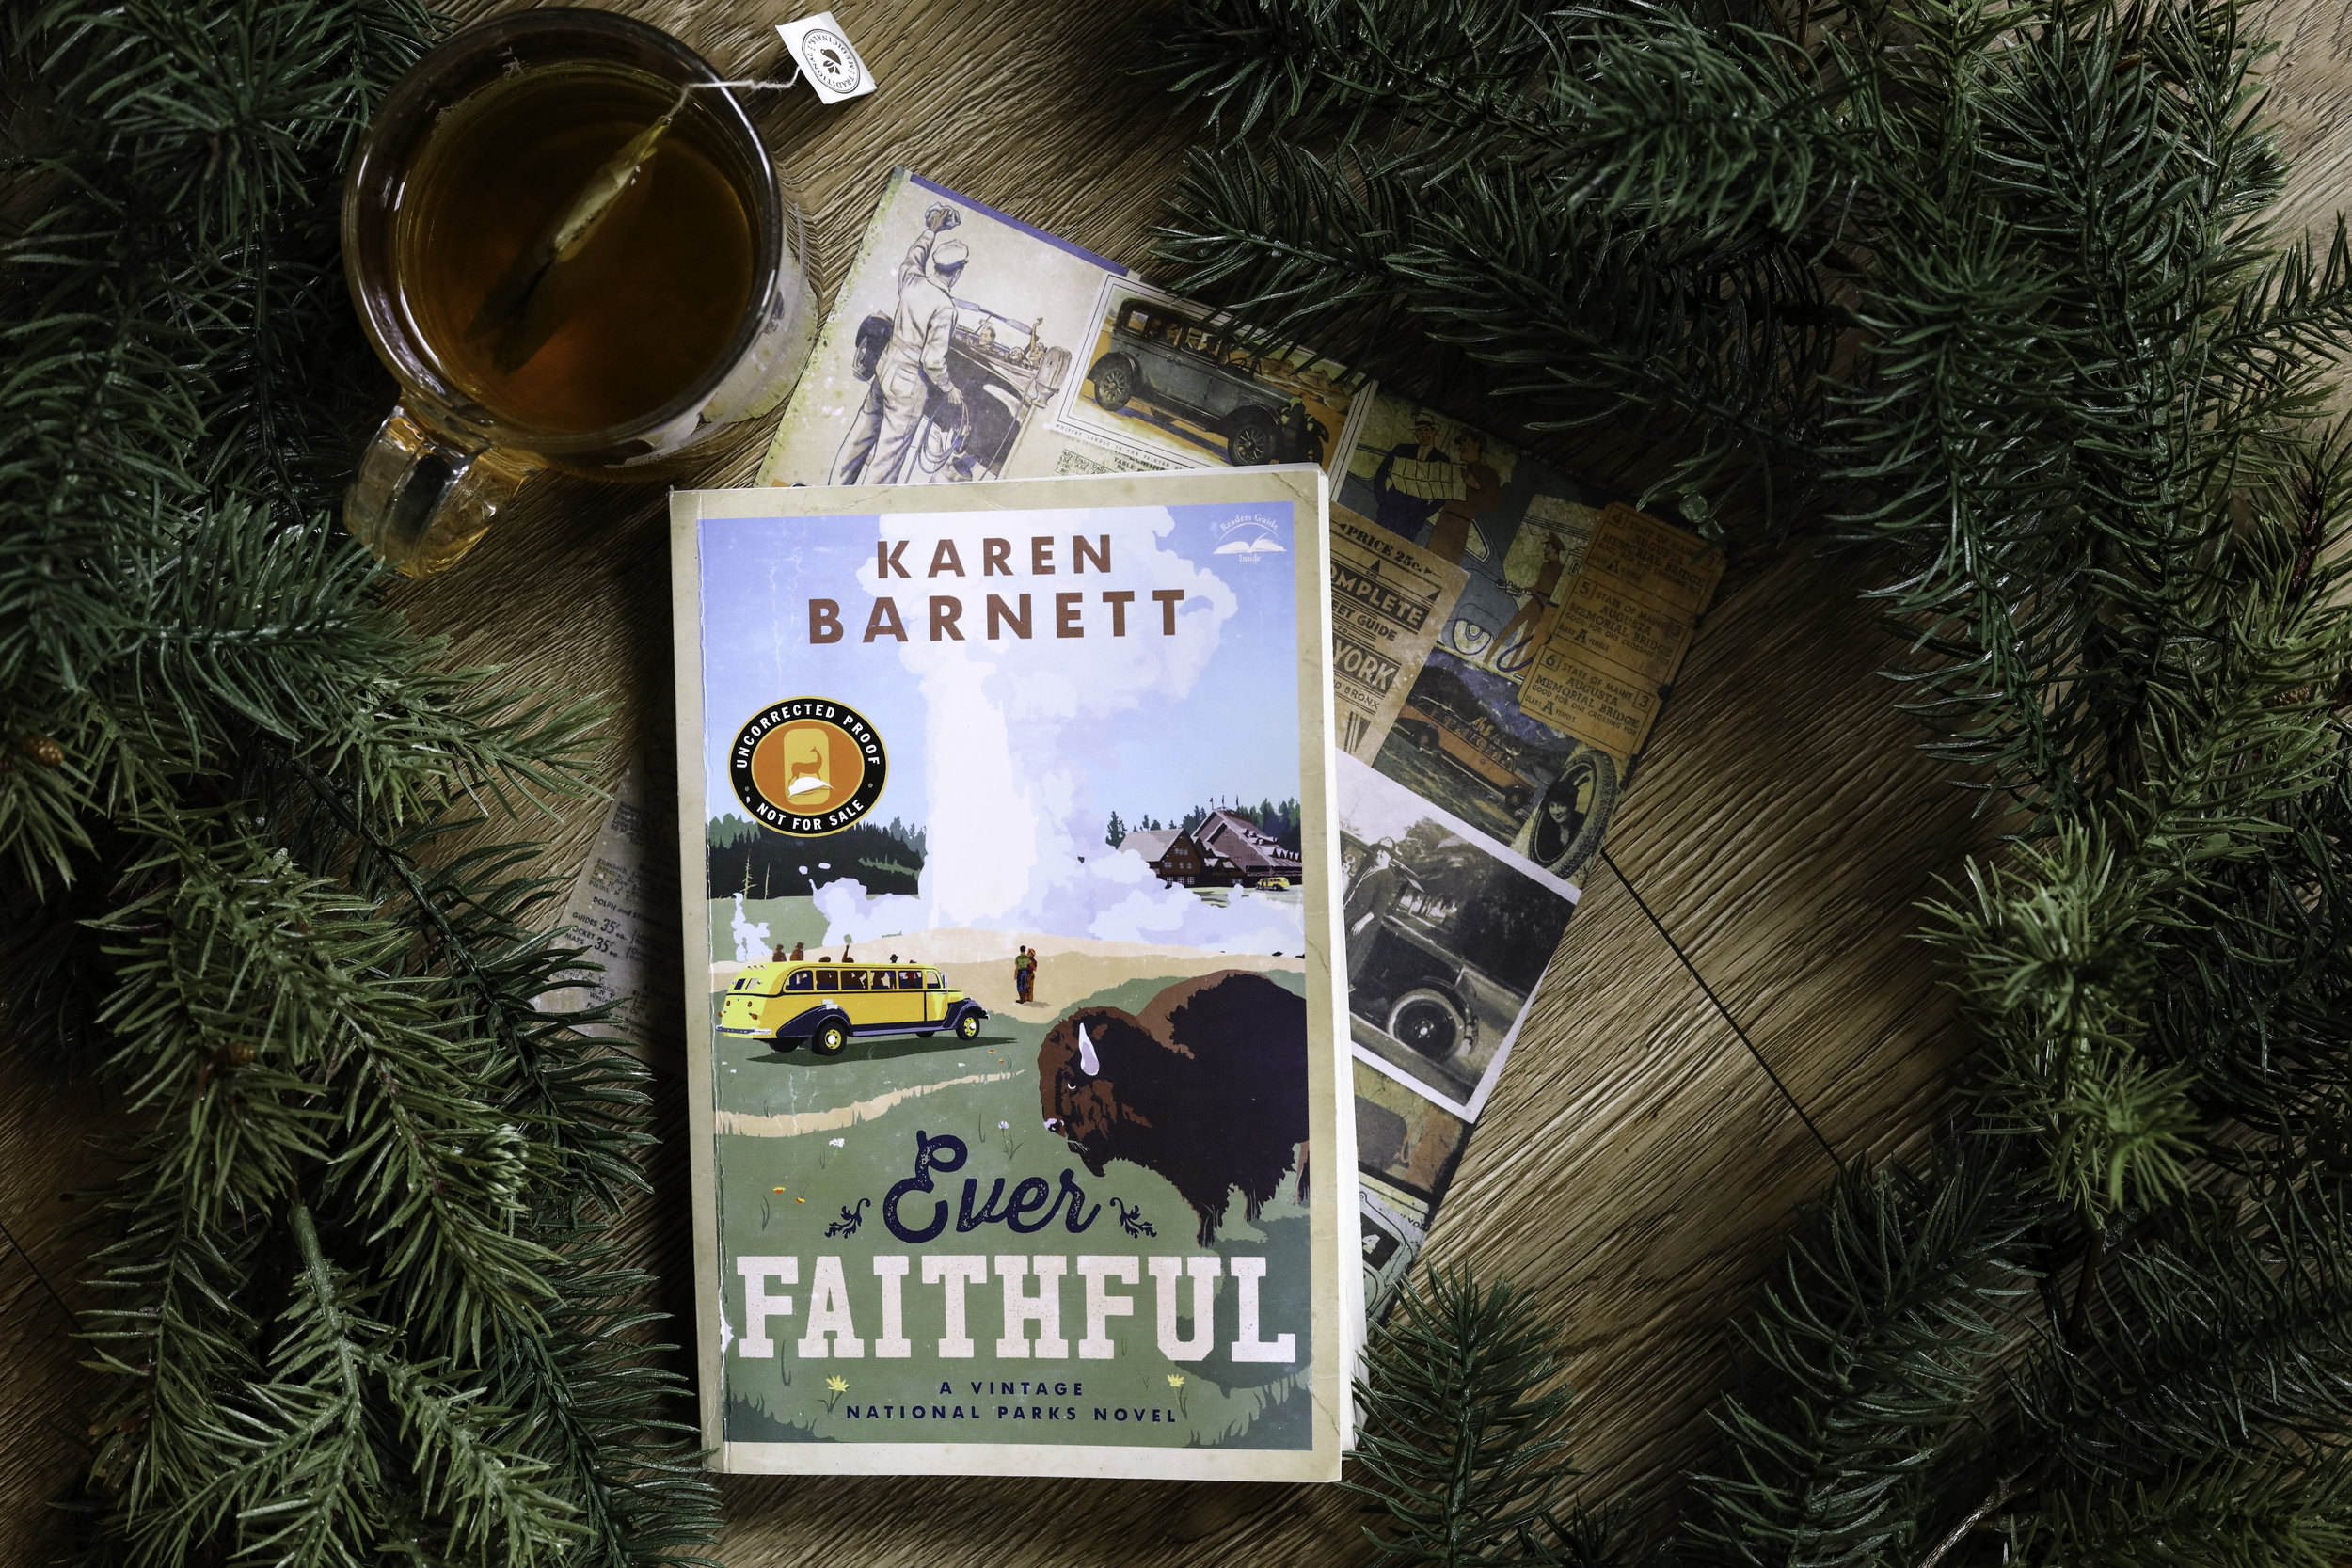 Ever faithful karen barnett book review